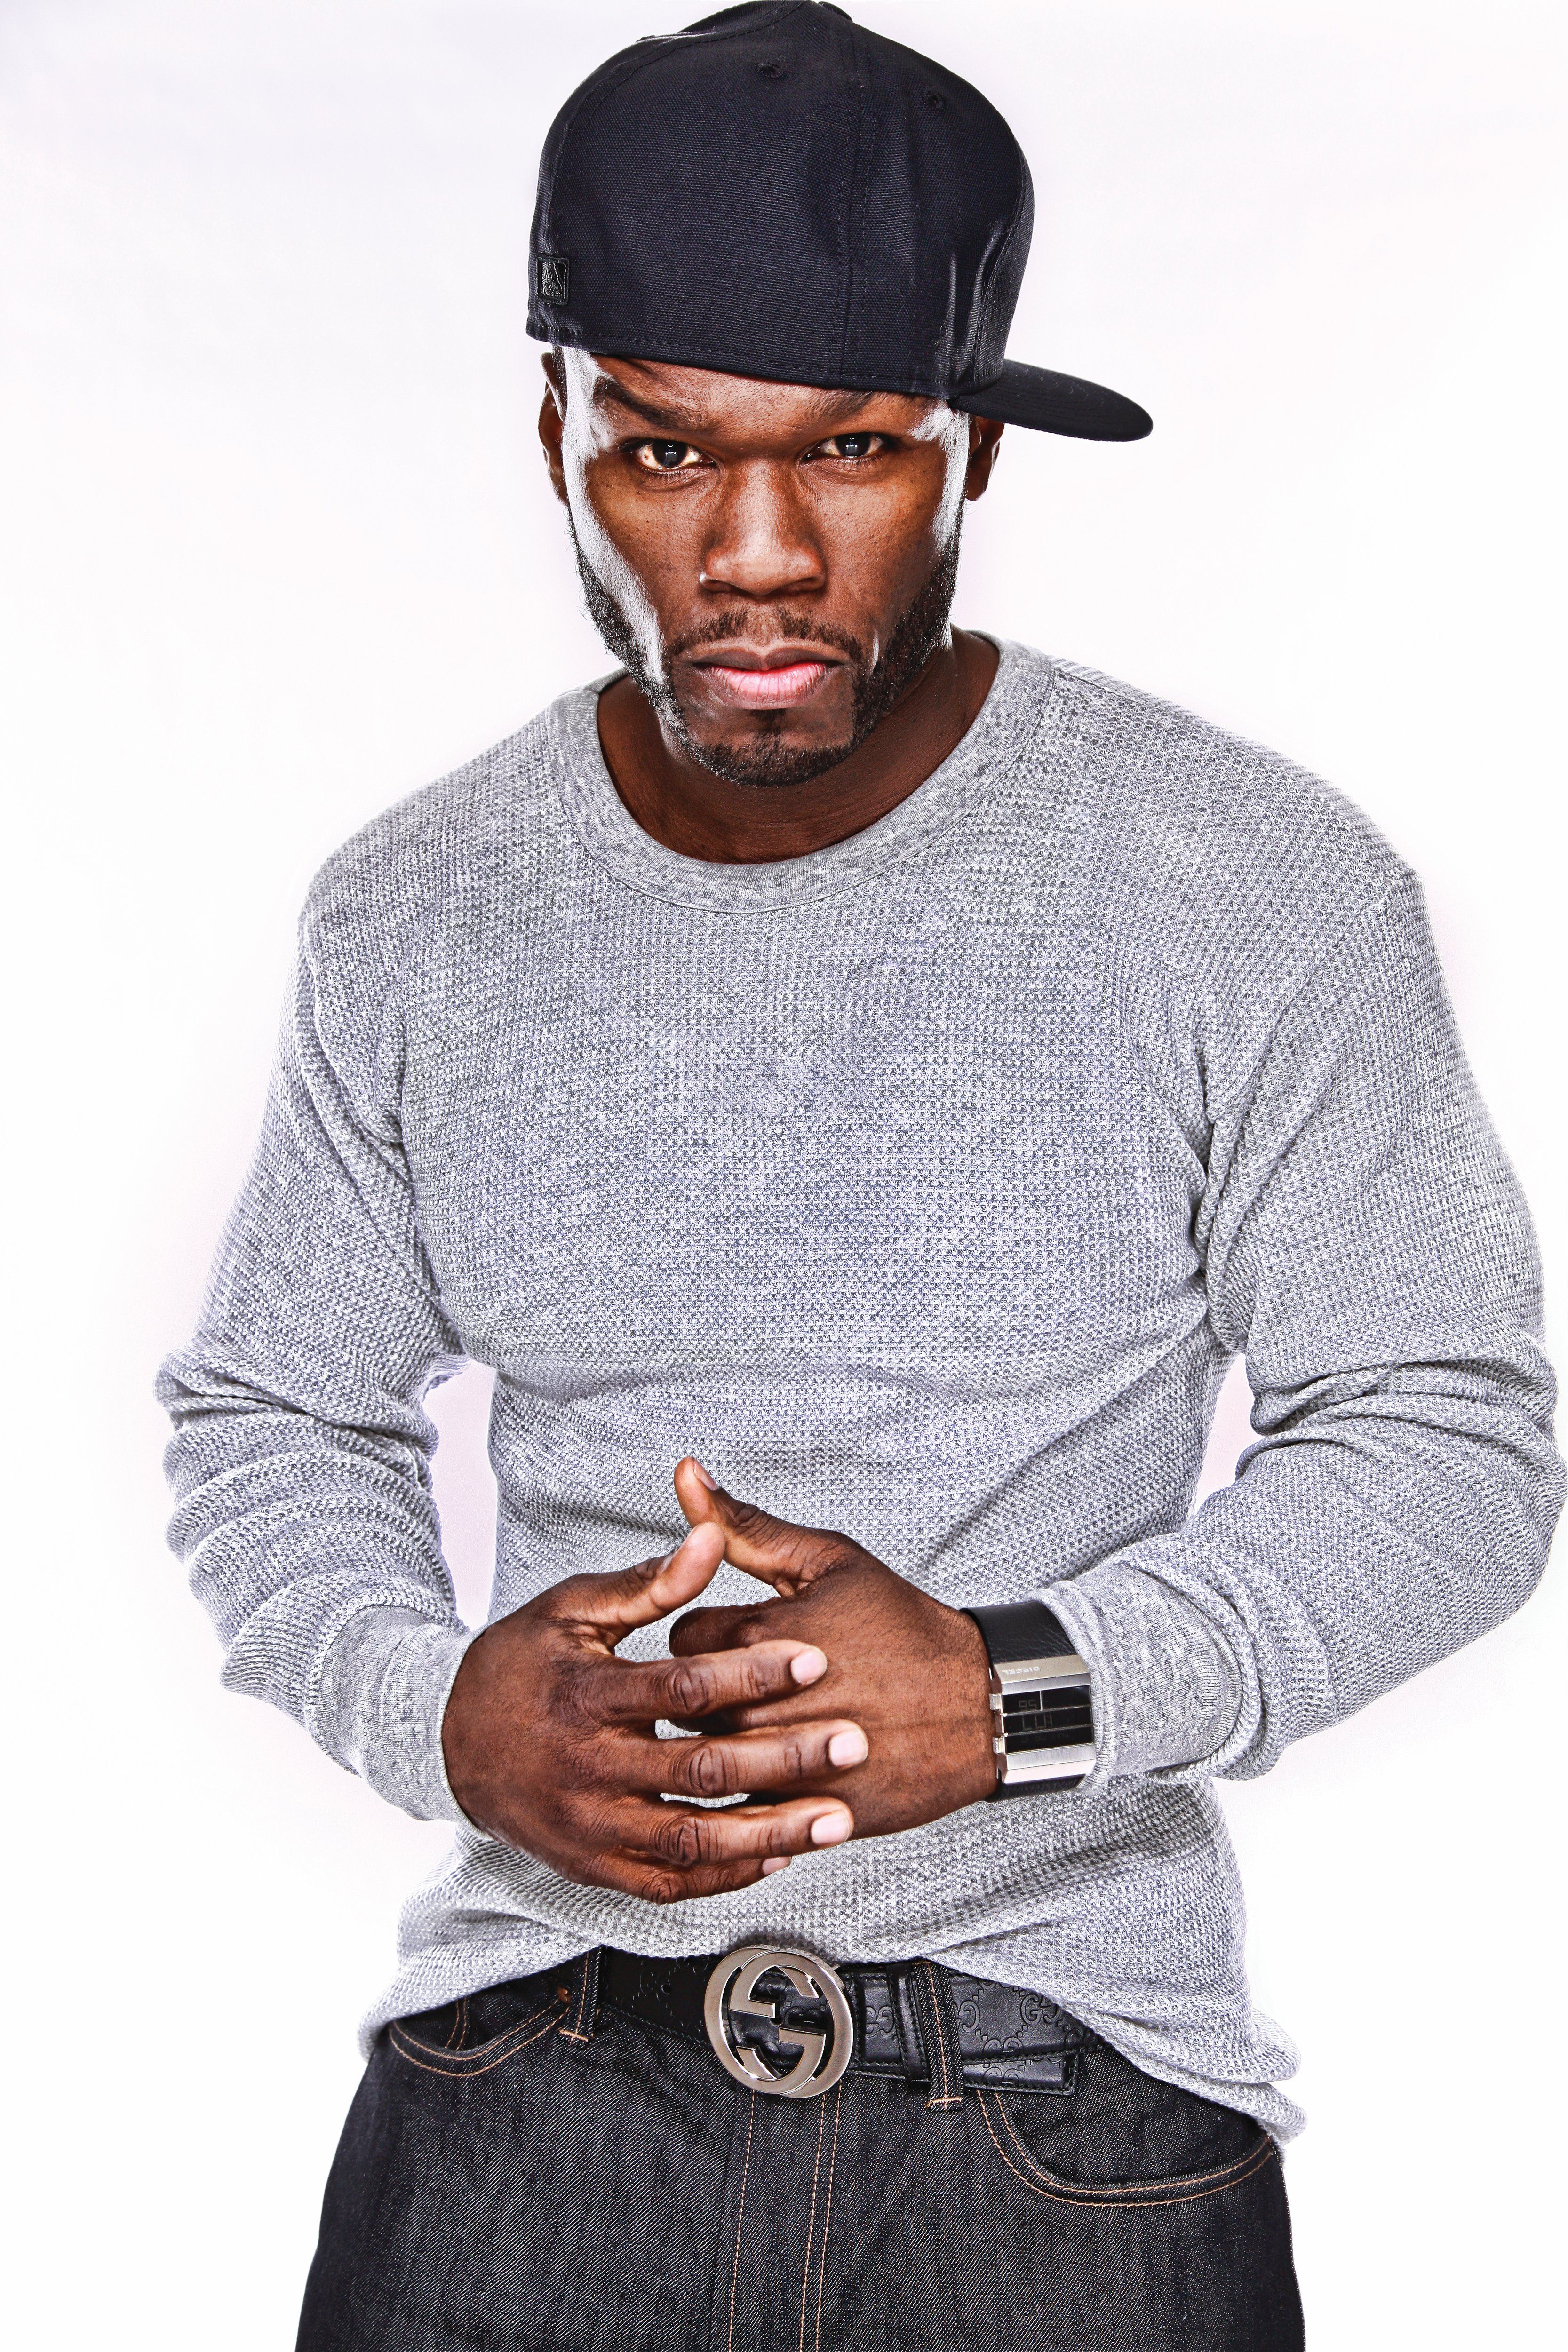 50 cents animal ambition an untamed desire to win is new